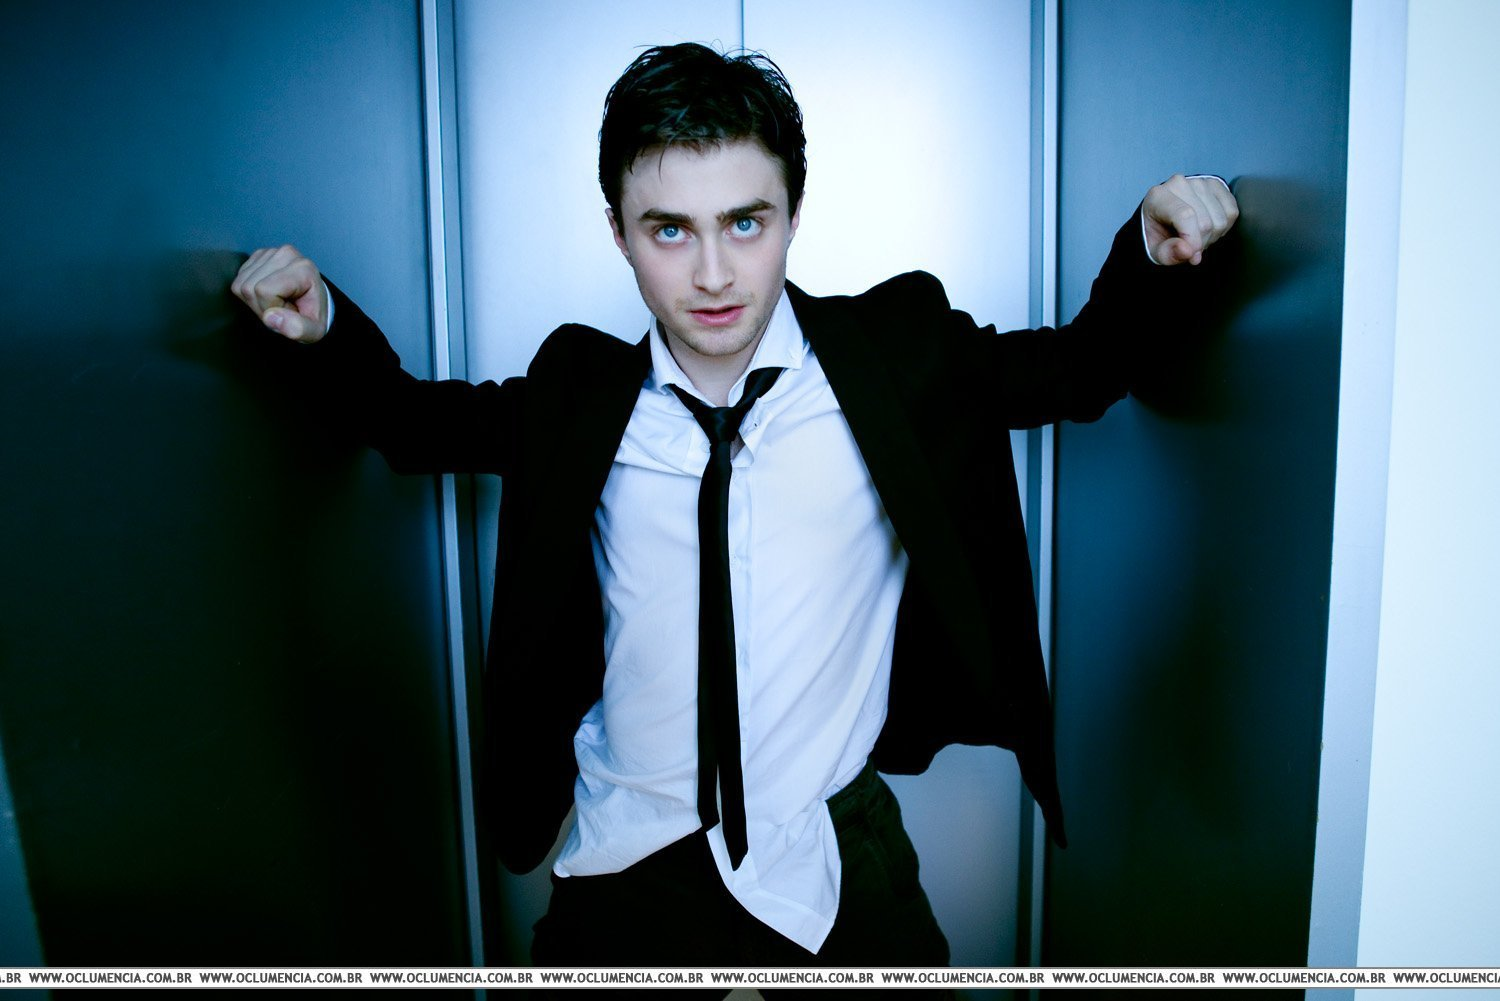 radcliffe hd wallpapers num2 - photo #34